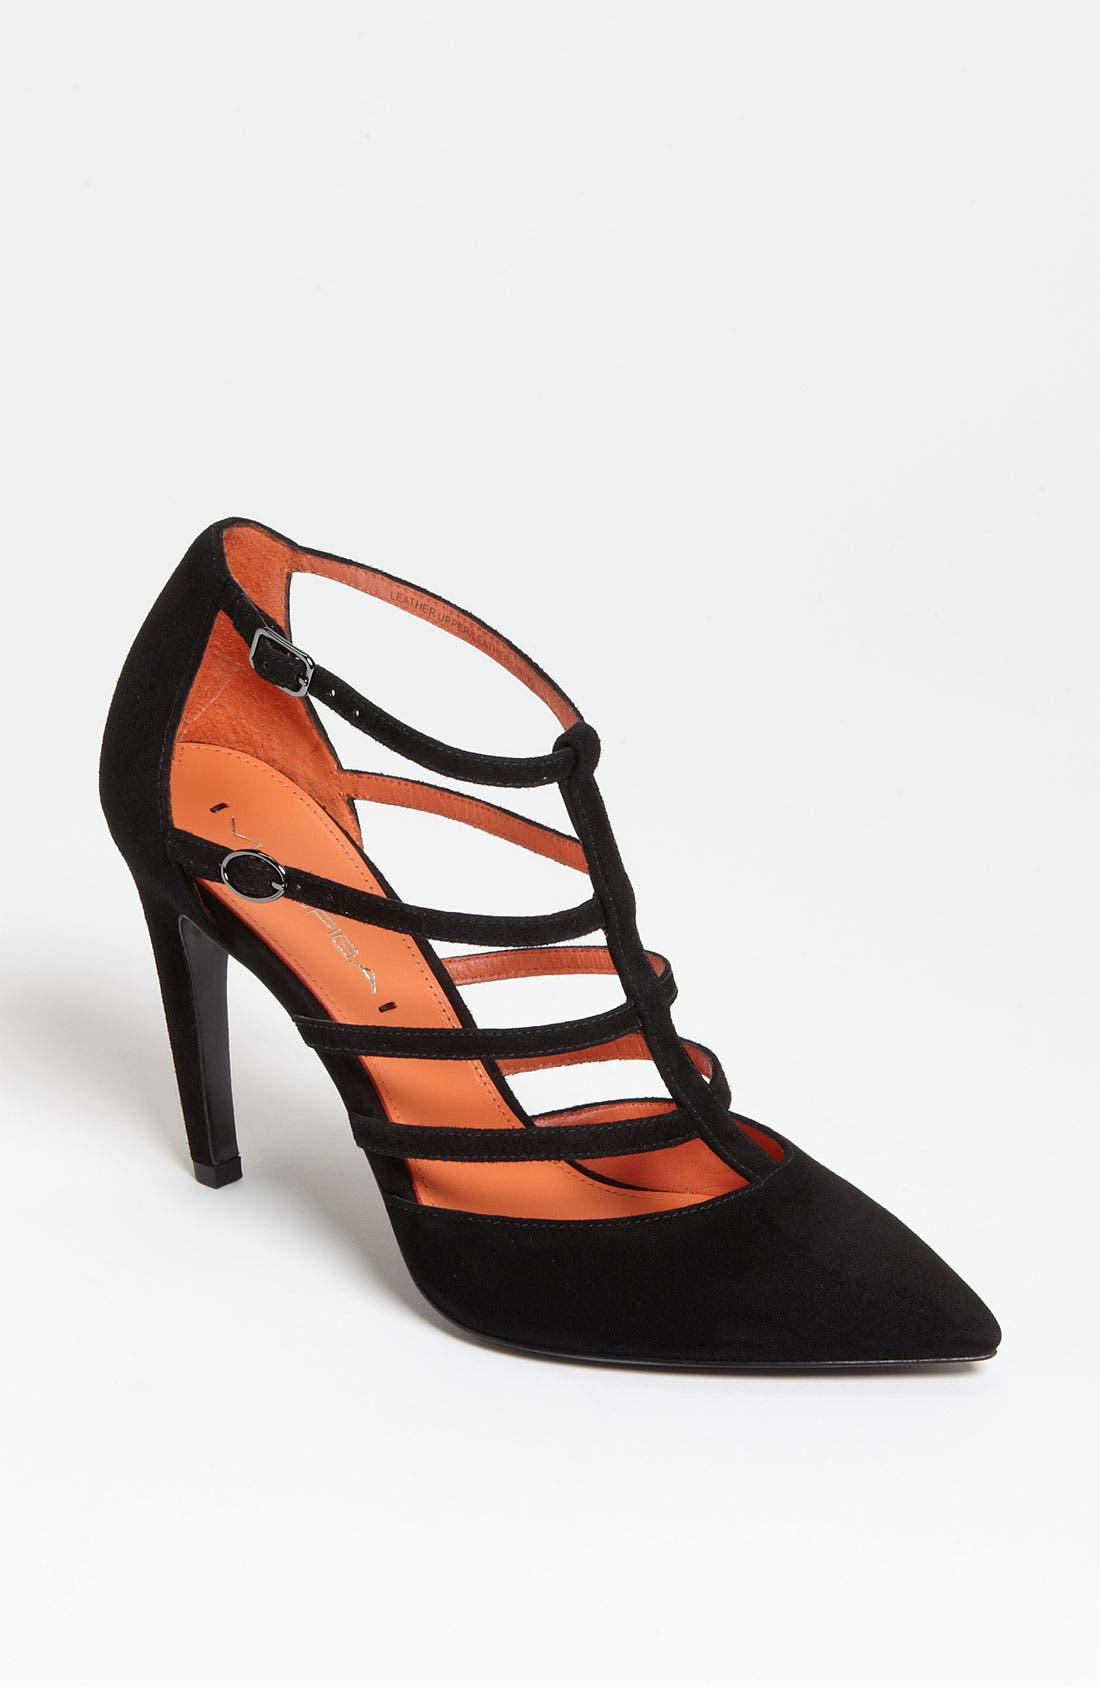 Main Image - Via Spiga 'Edita' Pump